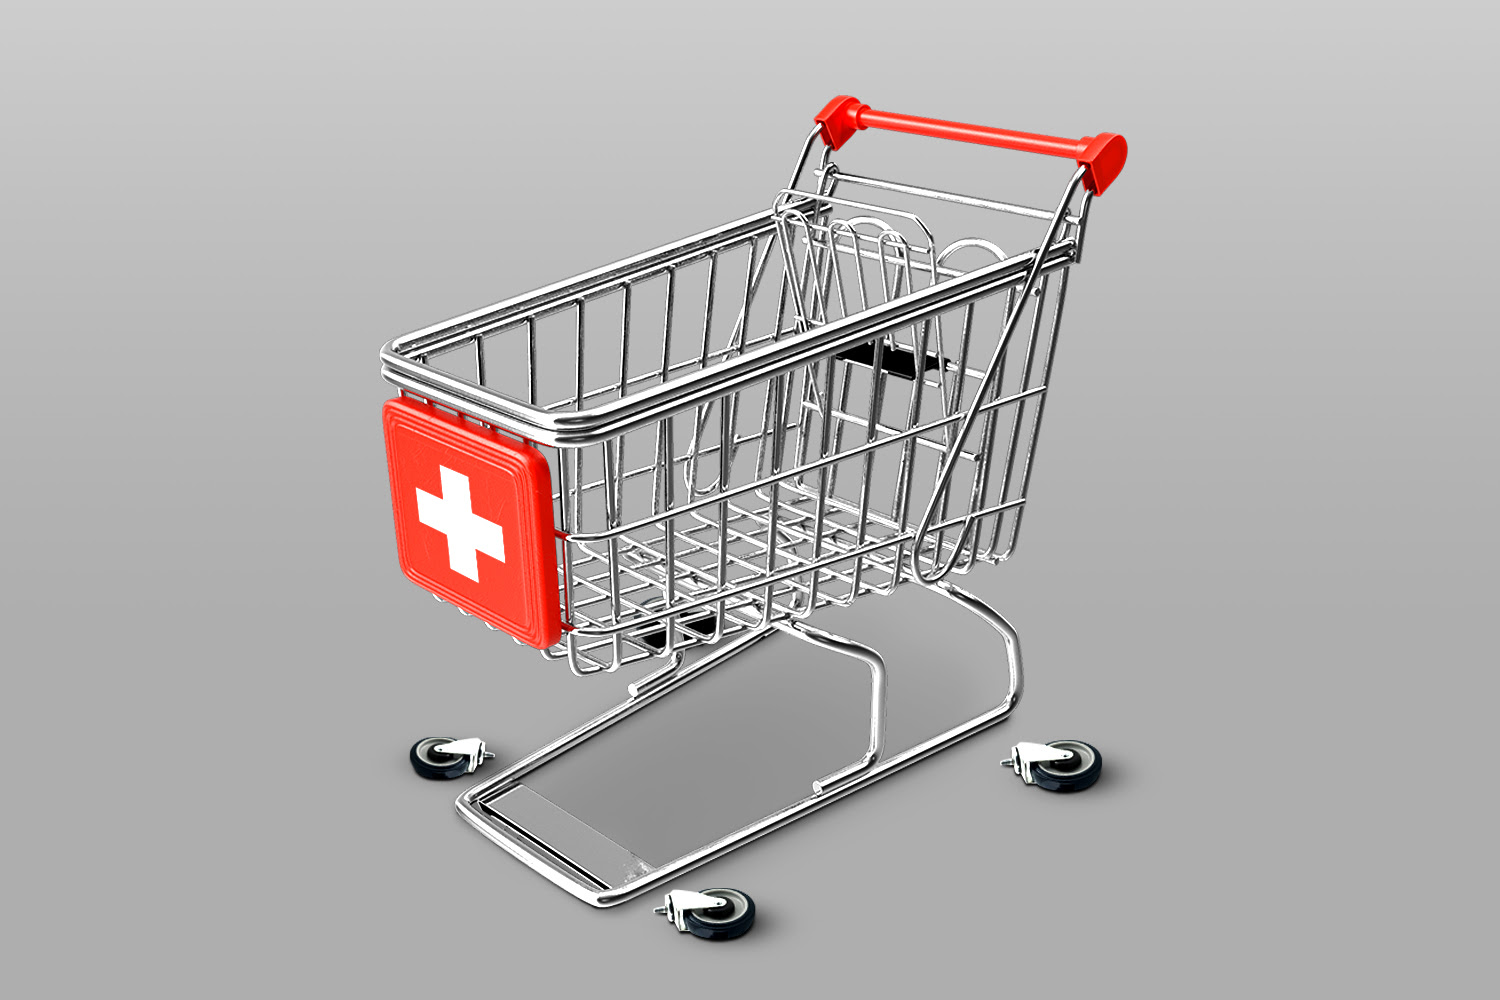 Hospital-style shopping cart